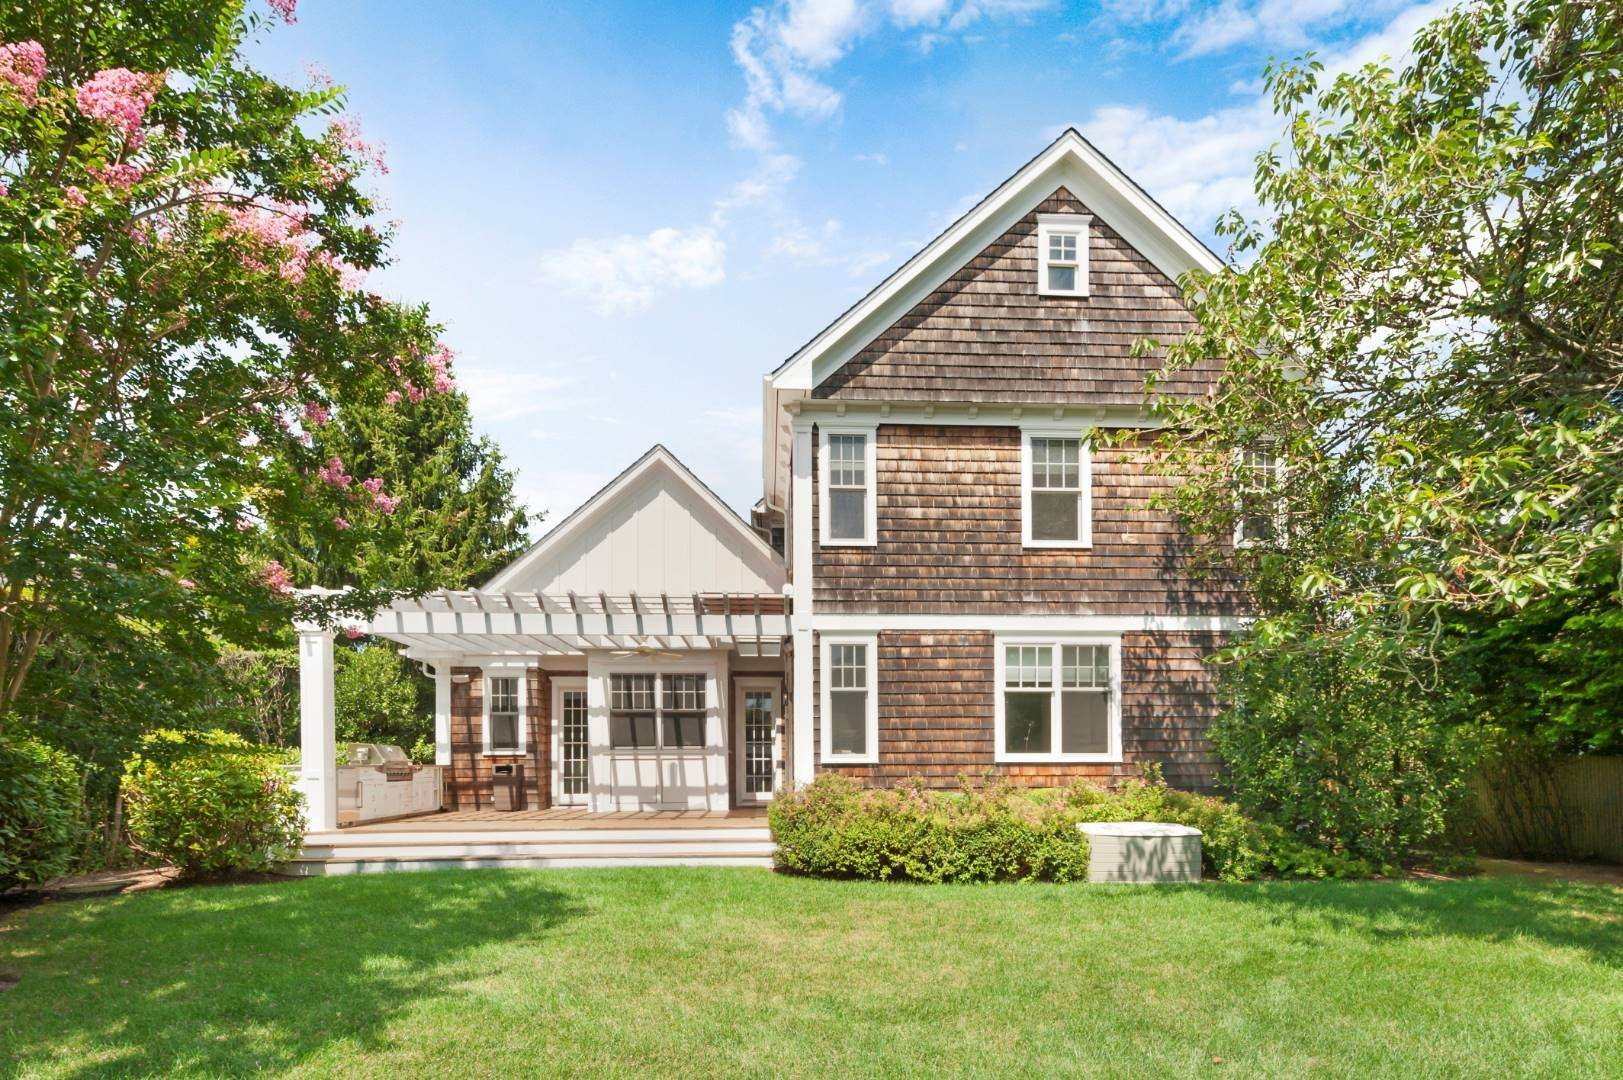 Single Family Home at Southampton Village Rental 66 Old Town Crossing, Southampton, NY 11968